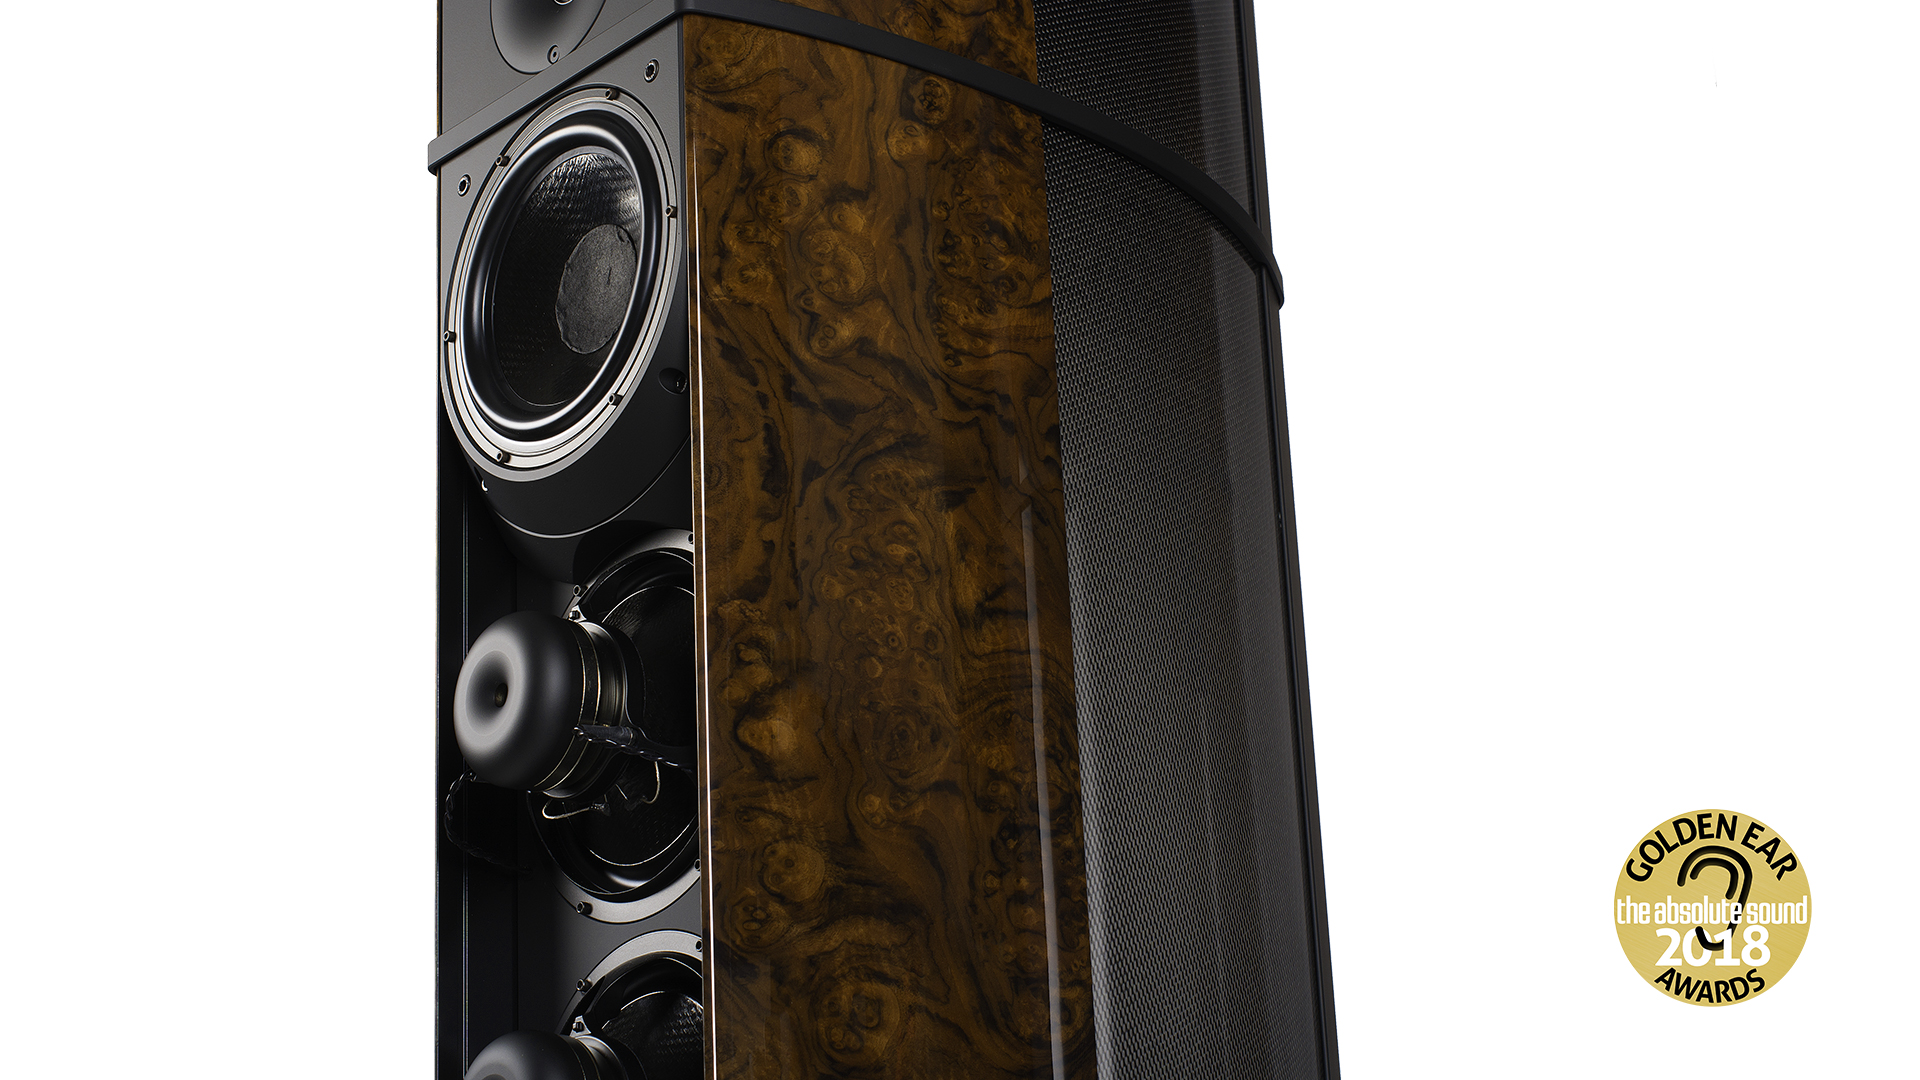 Resolution - Loudspeaker - Carbon Fibre - HIFI - Music - High End Audio - Absolute Sound - Golden Ear - USA - Award - British